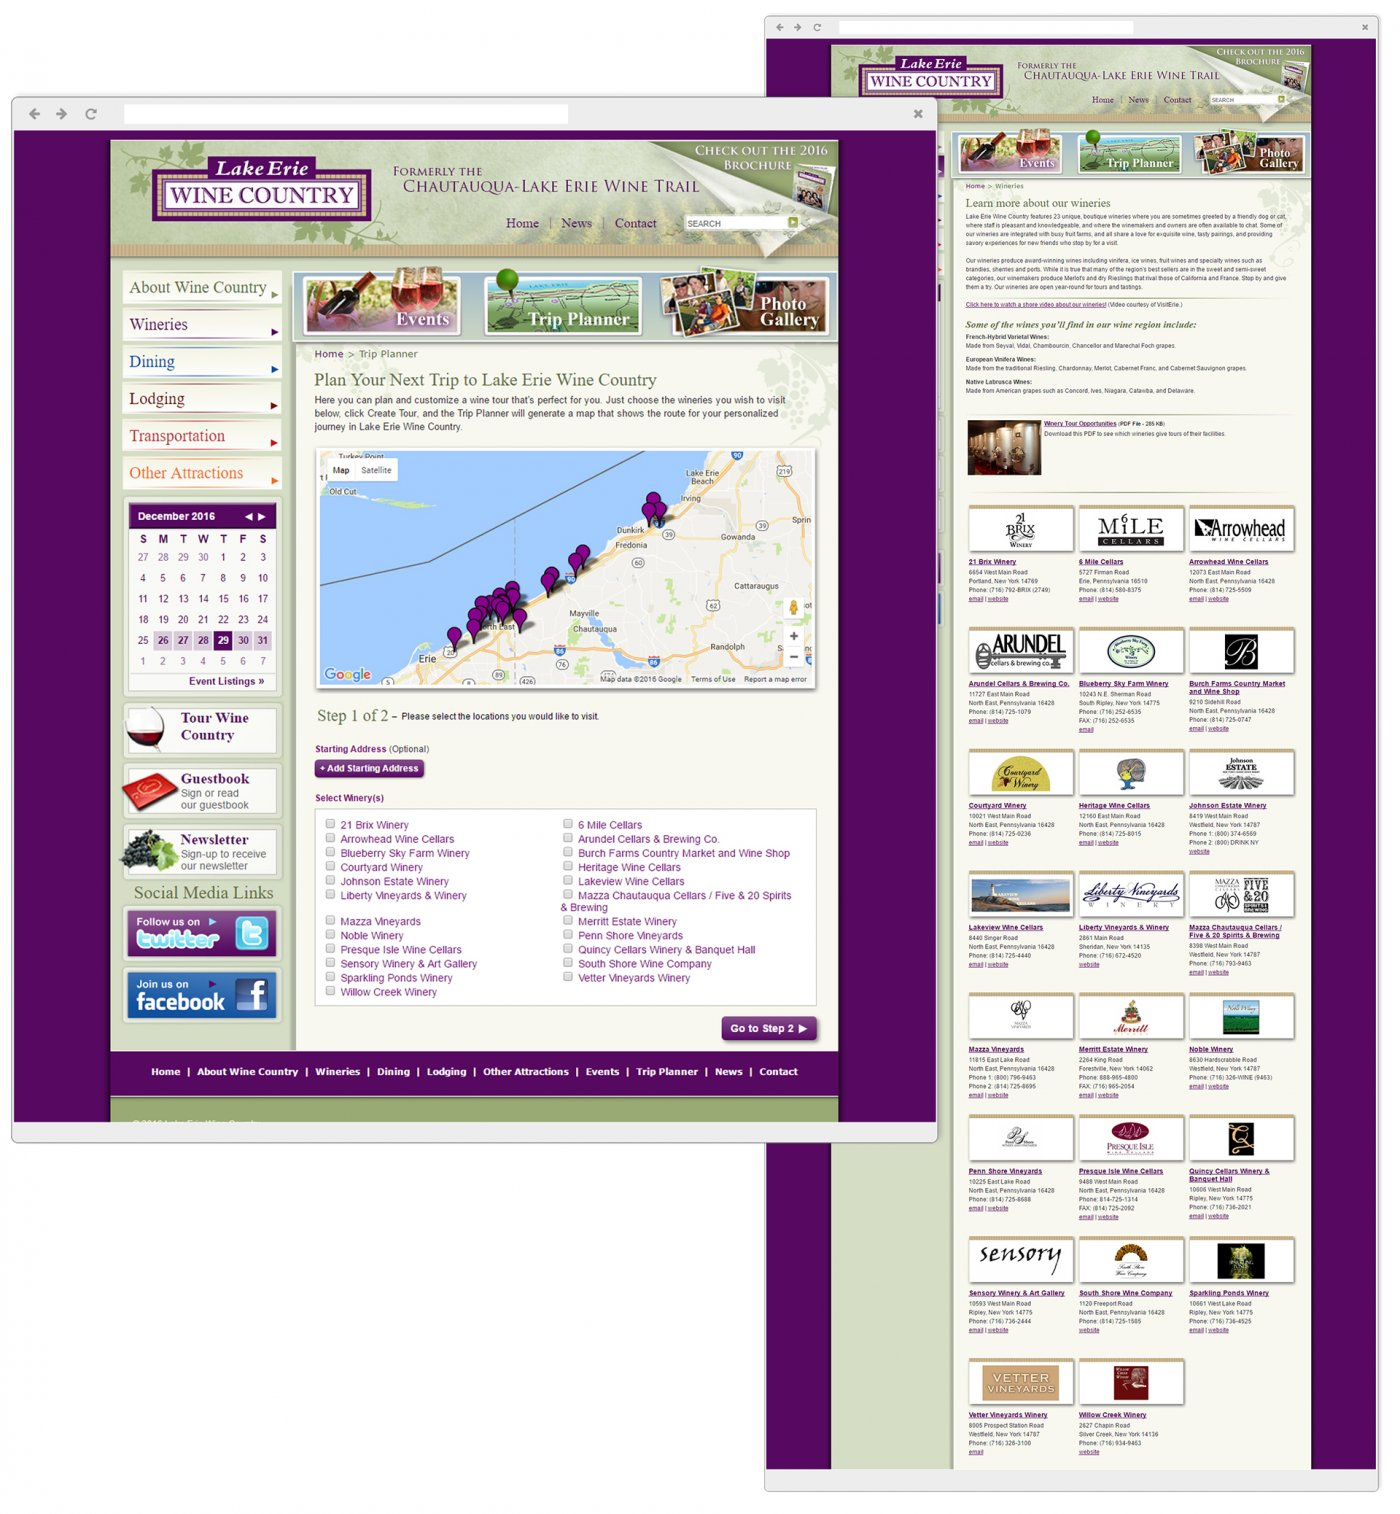 Interactive Winery Trip Planner & Complete Winery Directory